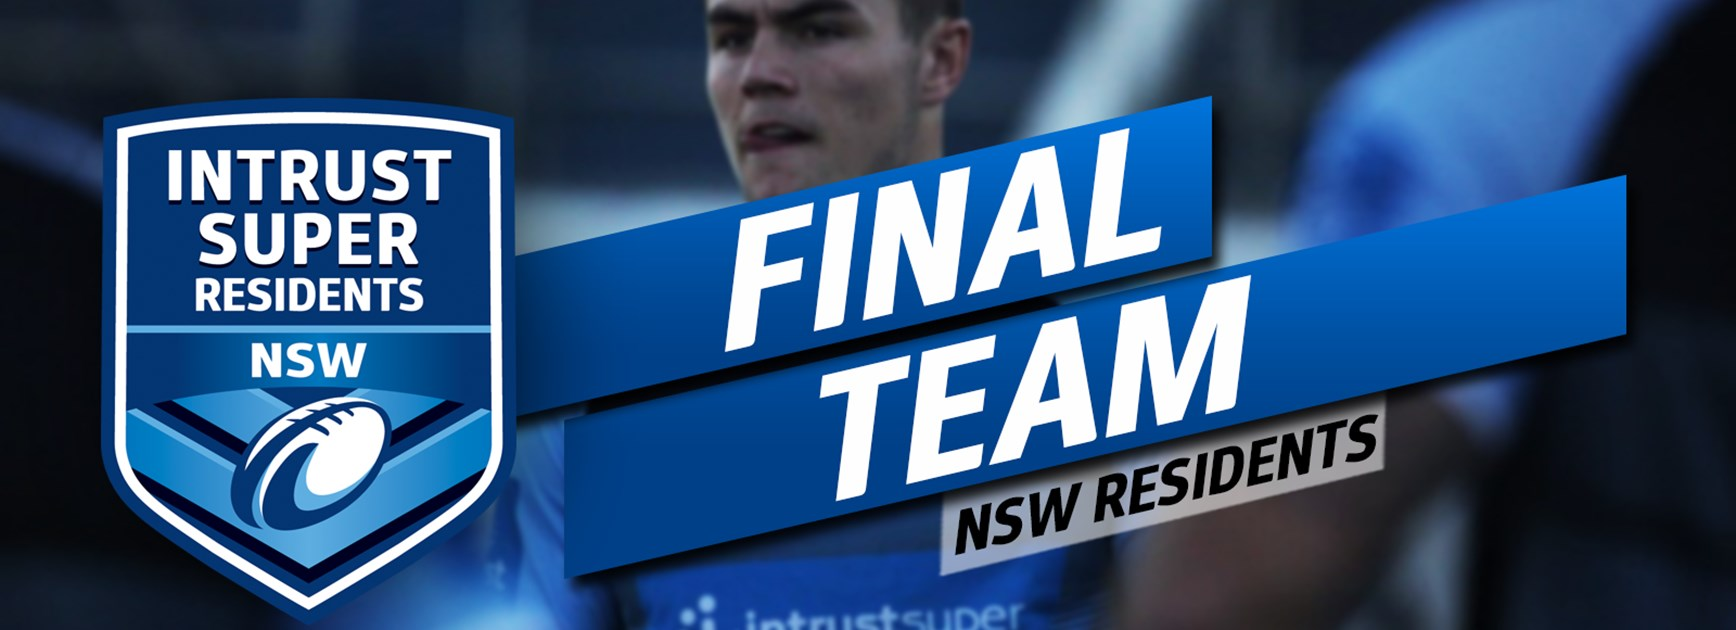 FINAL TEAM | Intrust Super NSW Residents